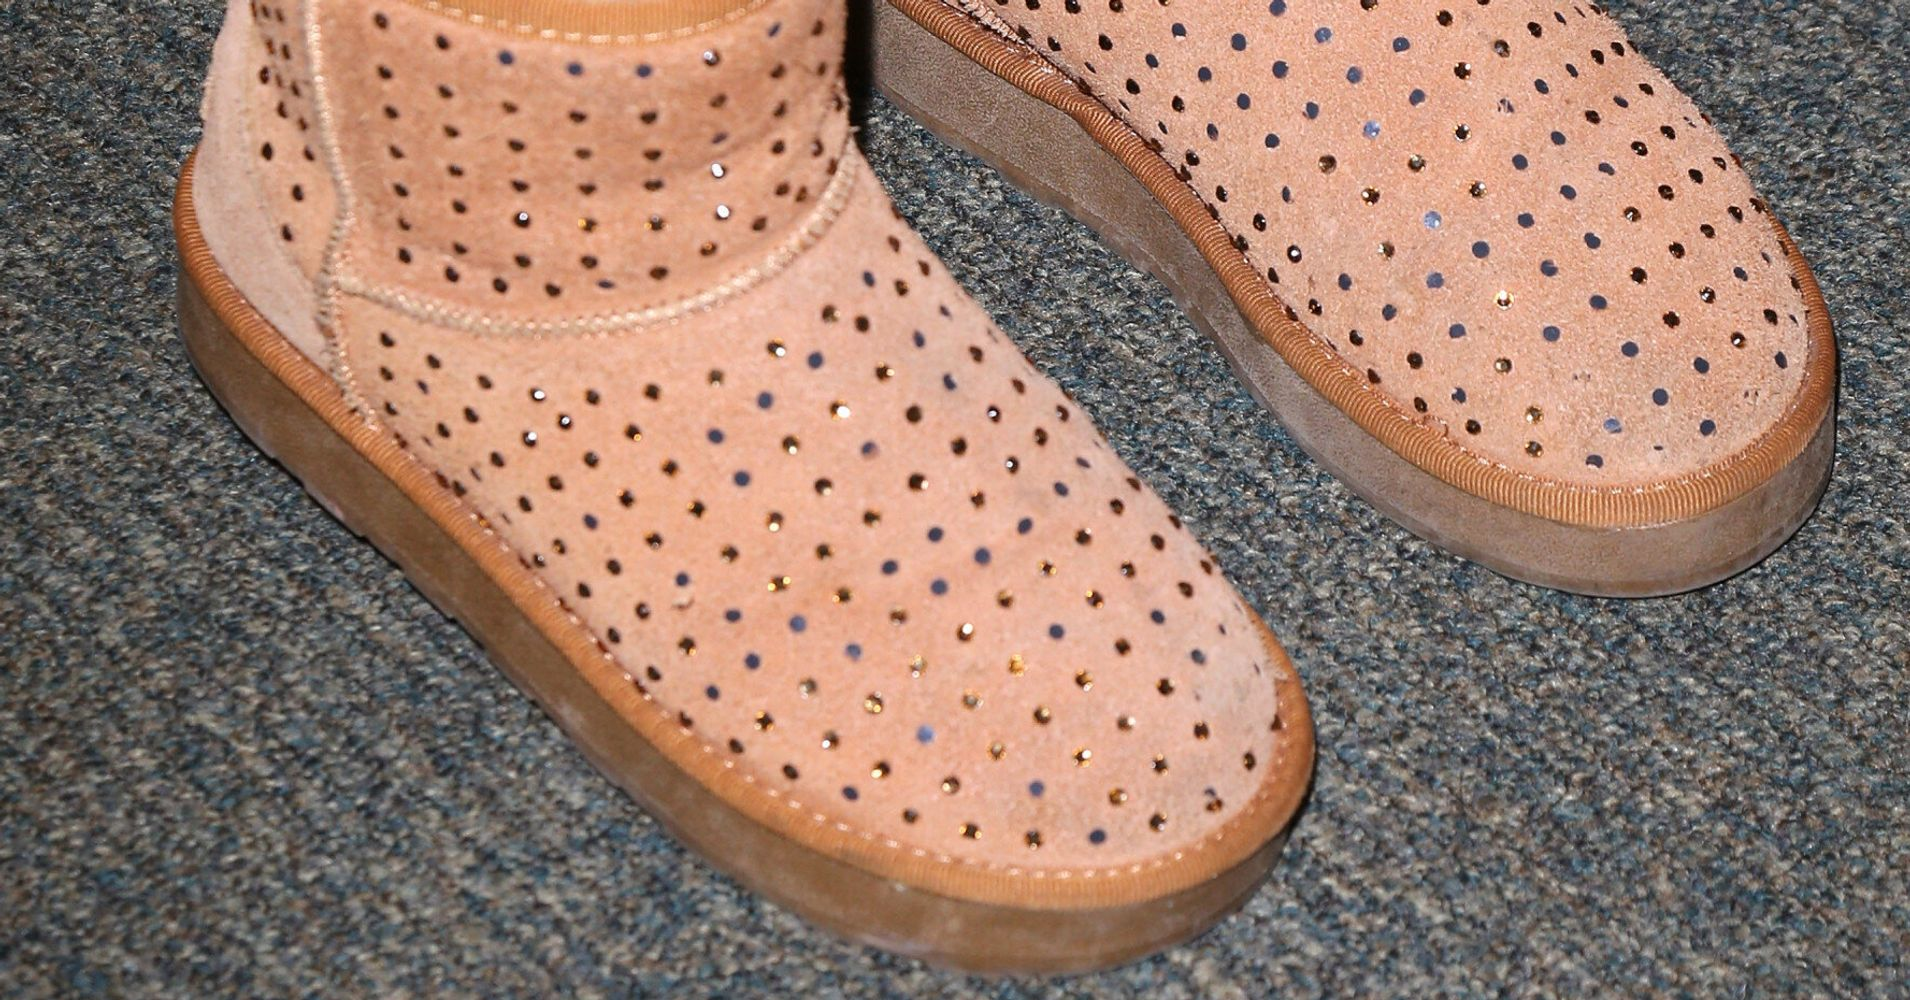 8baa73eac Those Boots Were Never Made For Walking   HuffPost Life